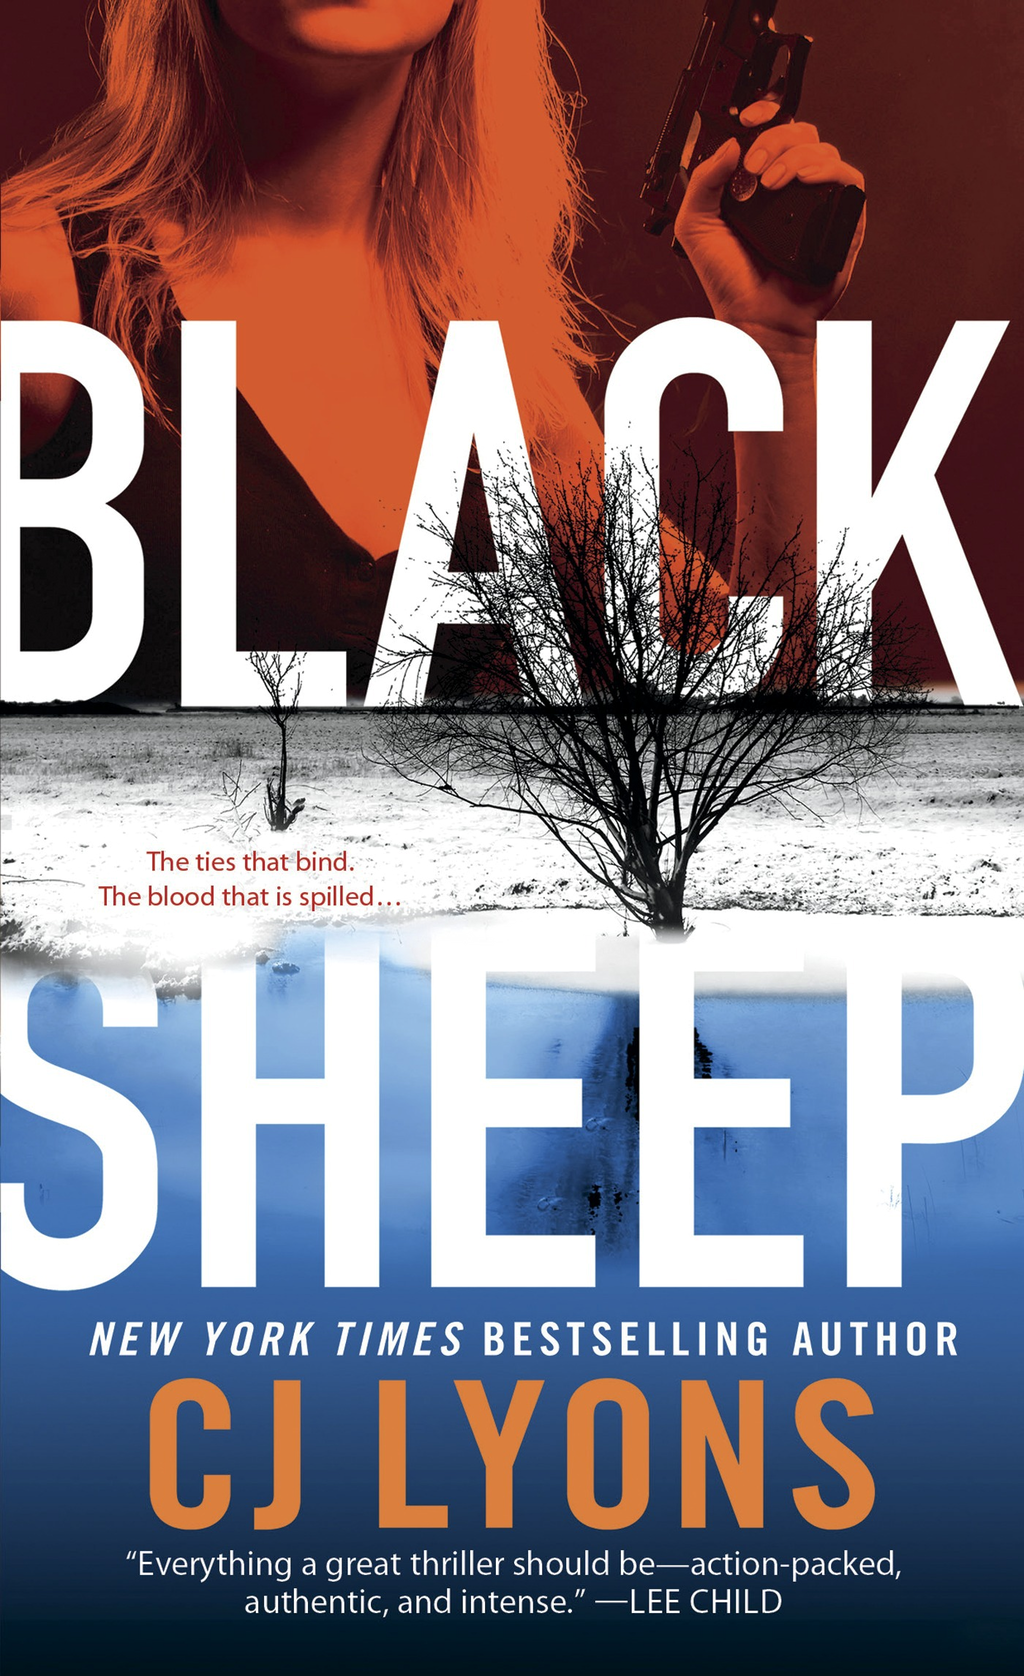 Black Sheep By: CJ Lyons